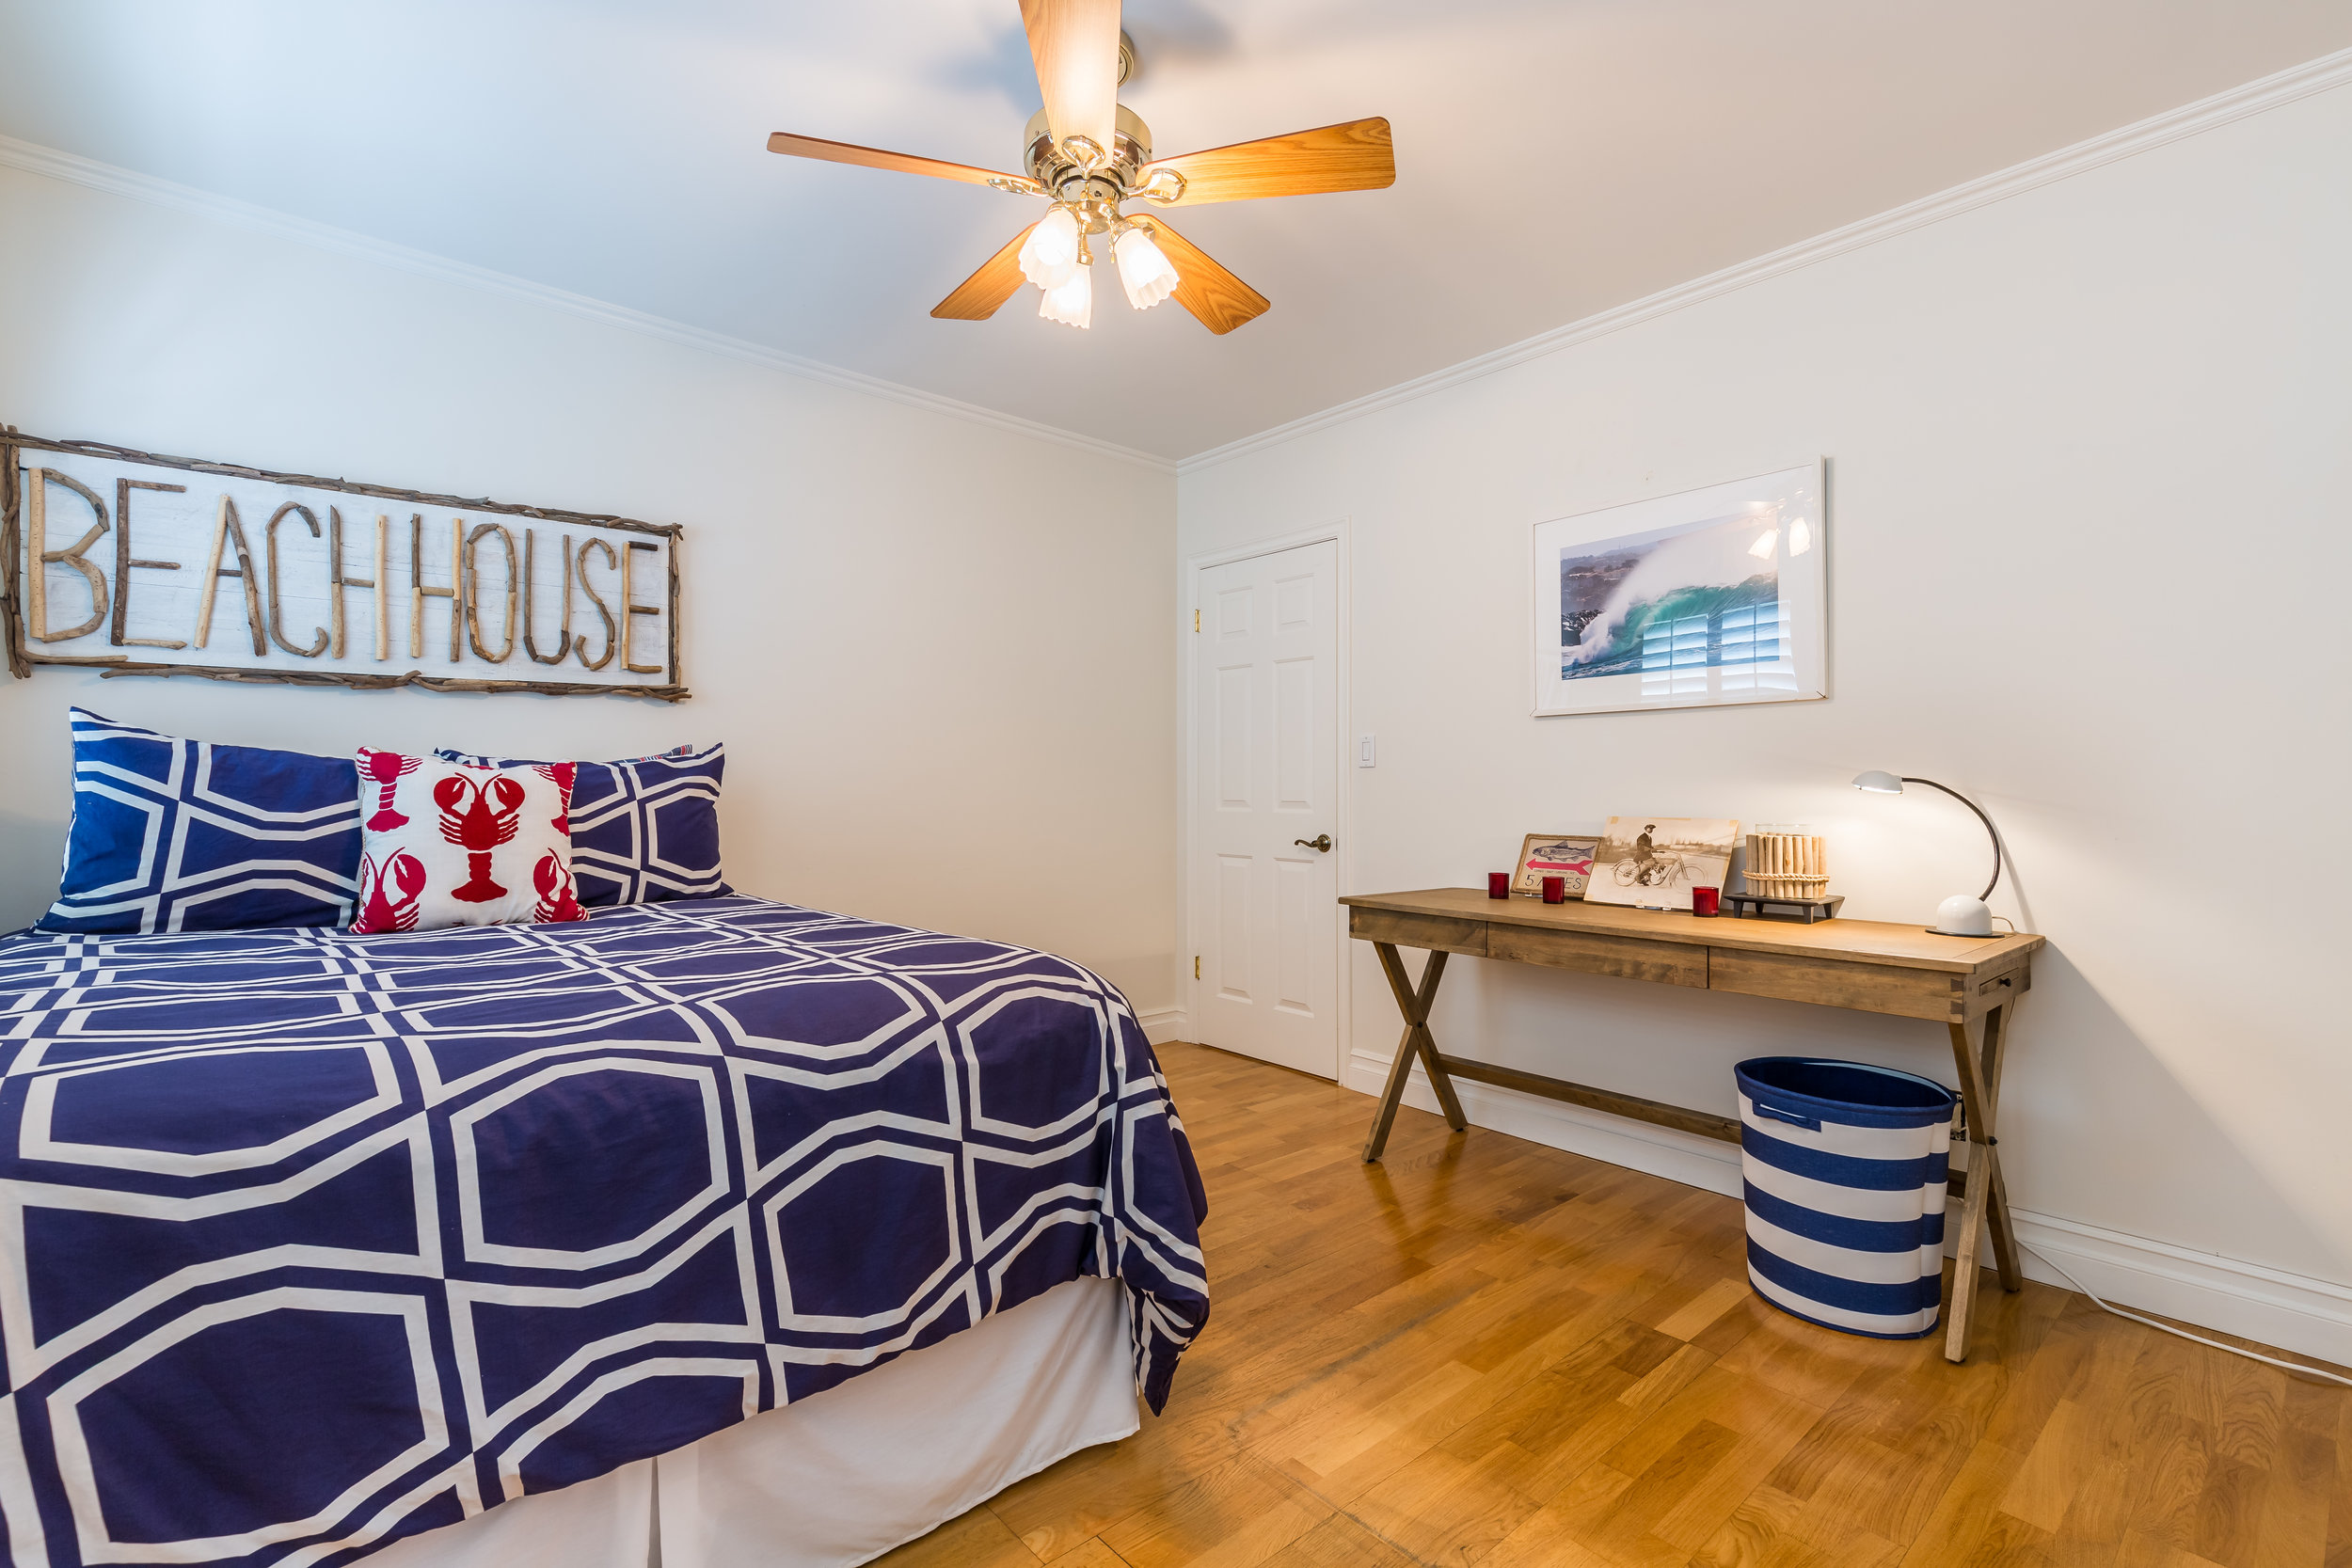 Image: Bedroom of our beach house in Newport Beach.